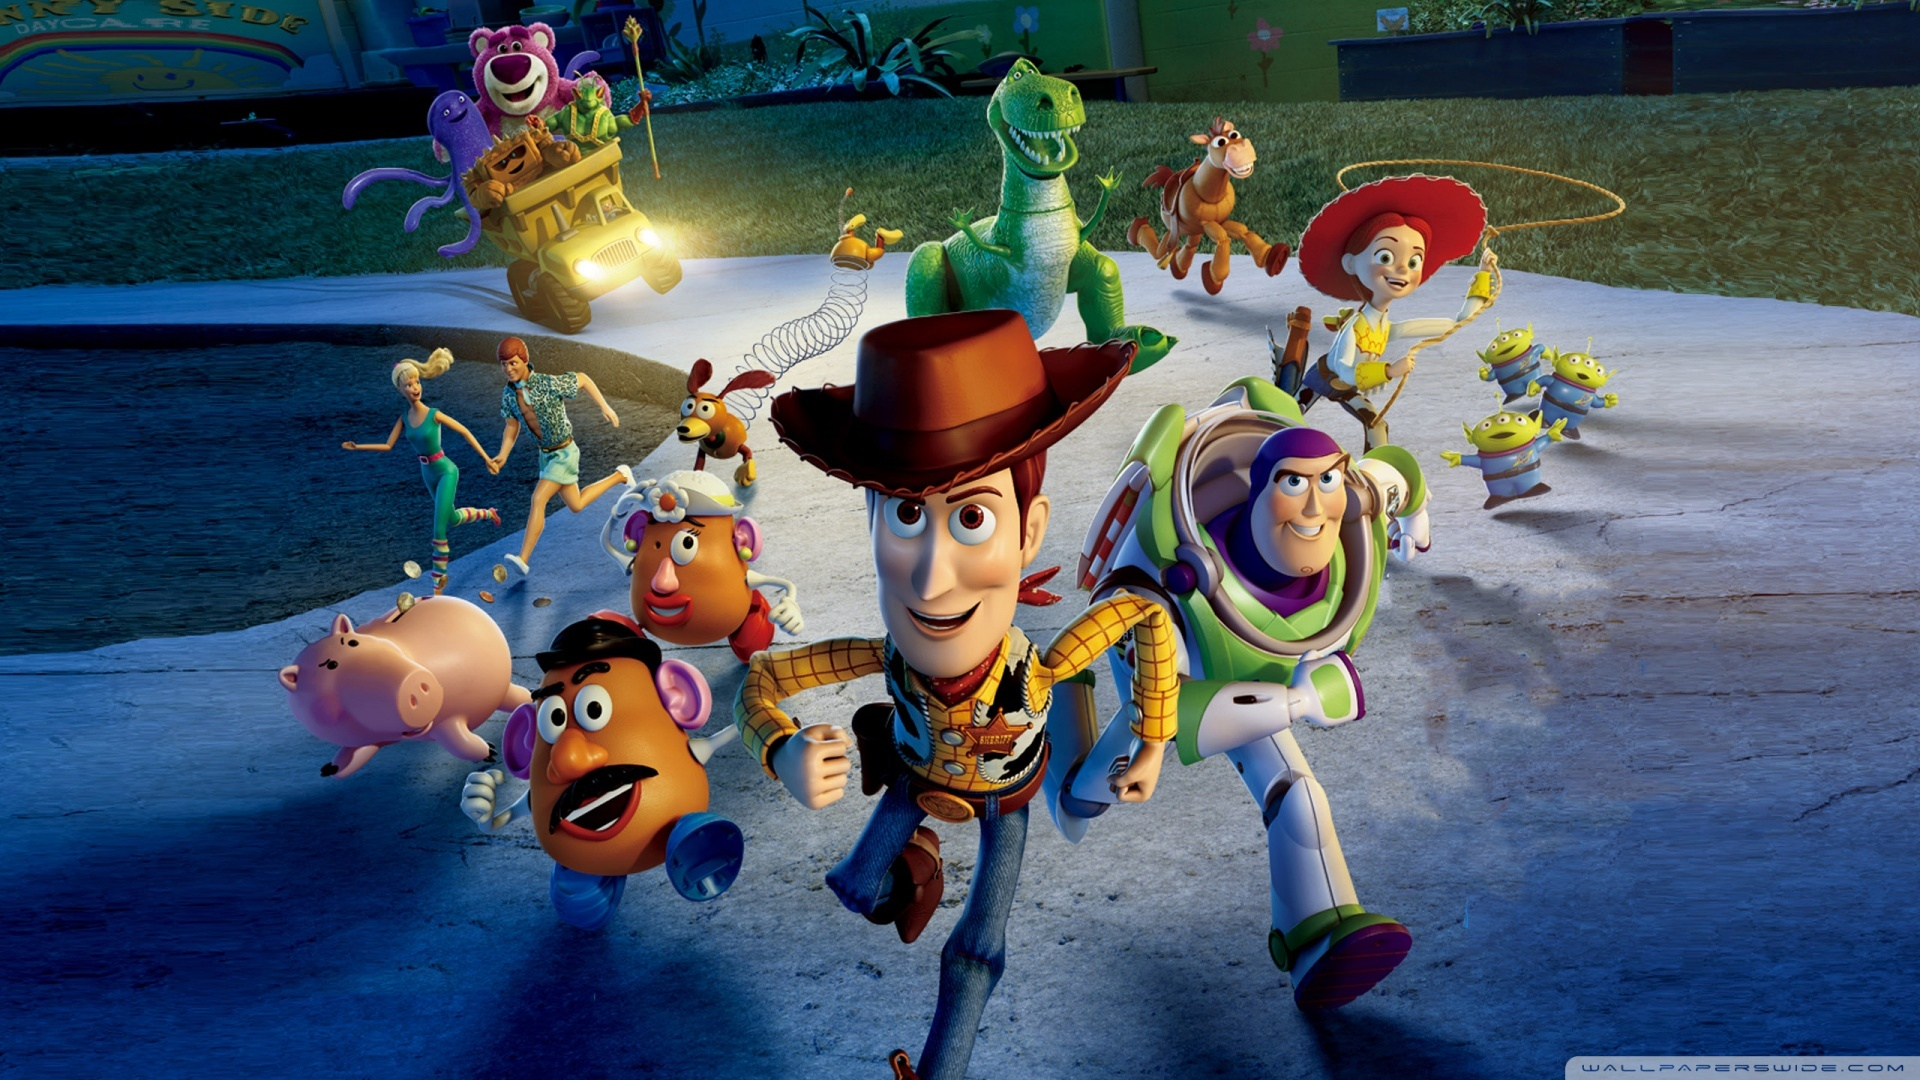 Toy story 3 hd wallpapers - Toy story wallpaper ...